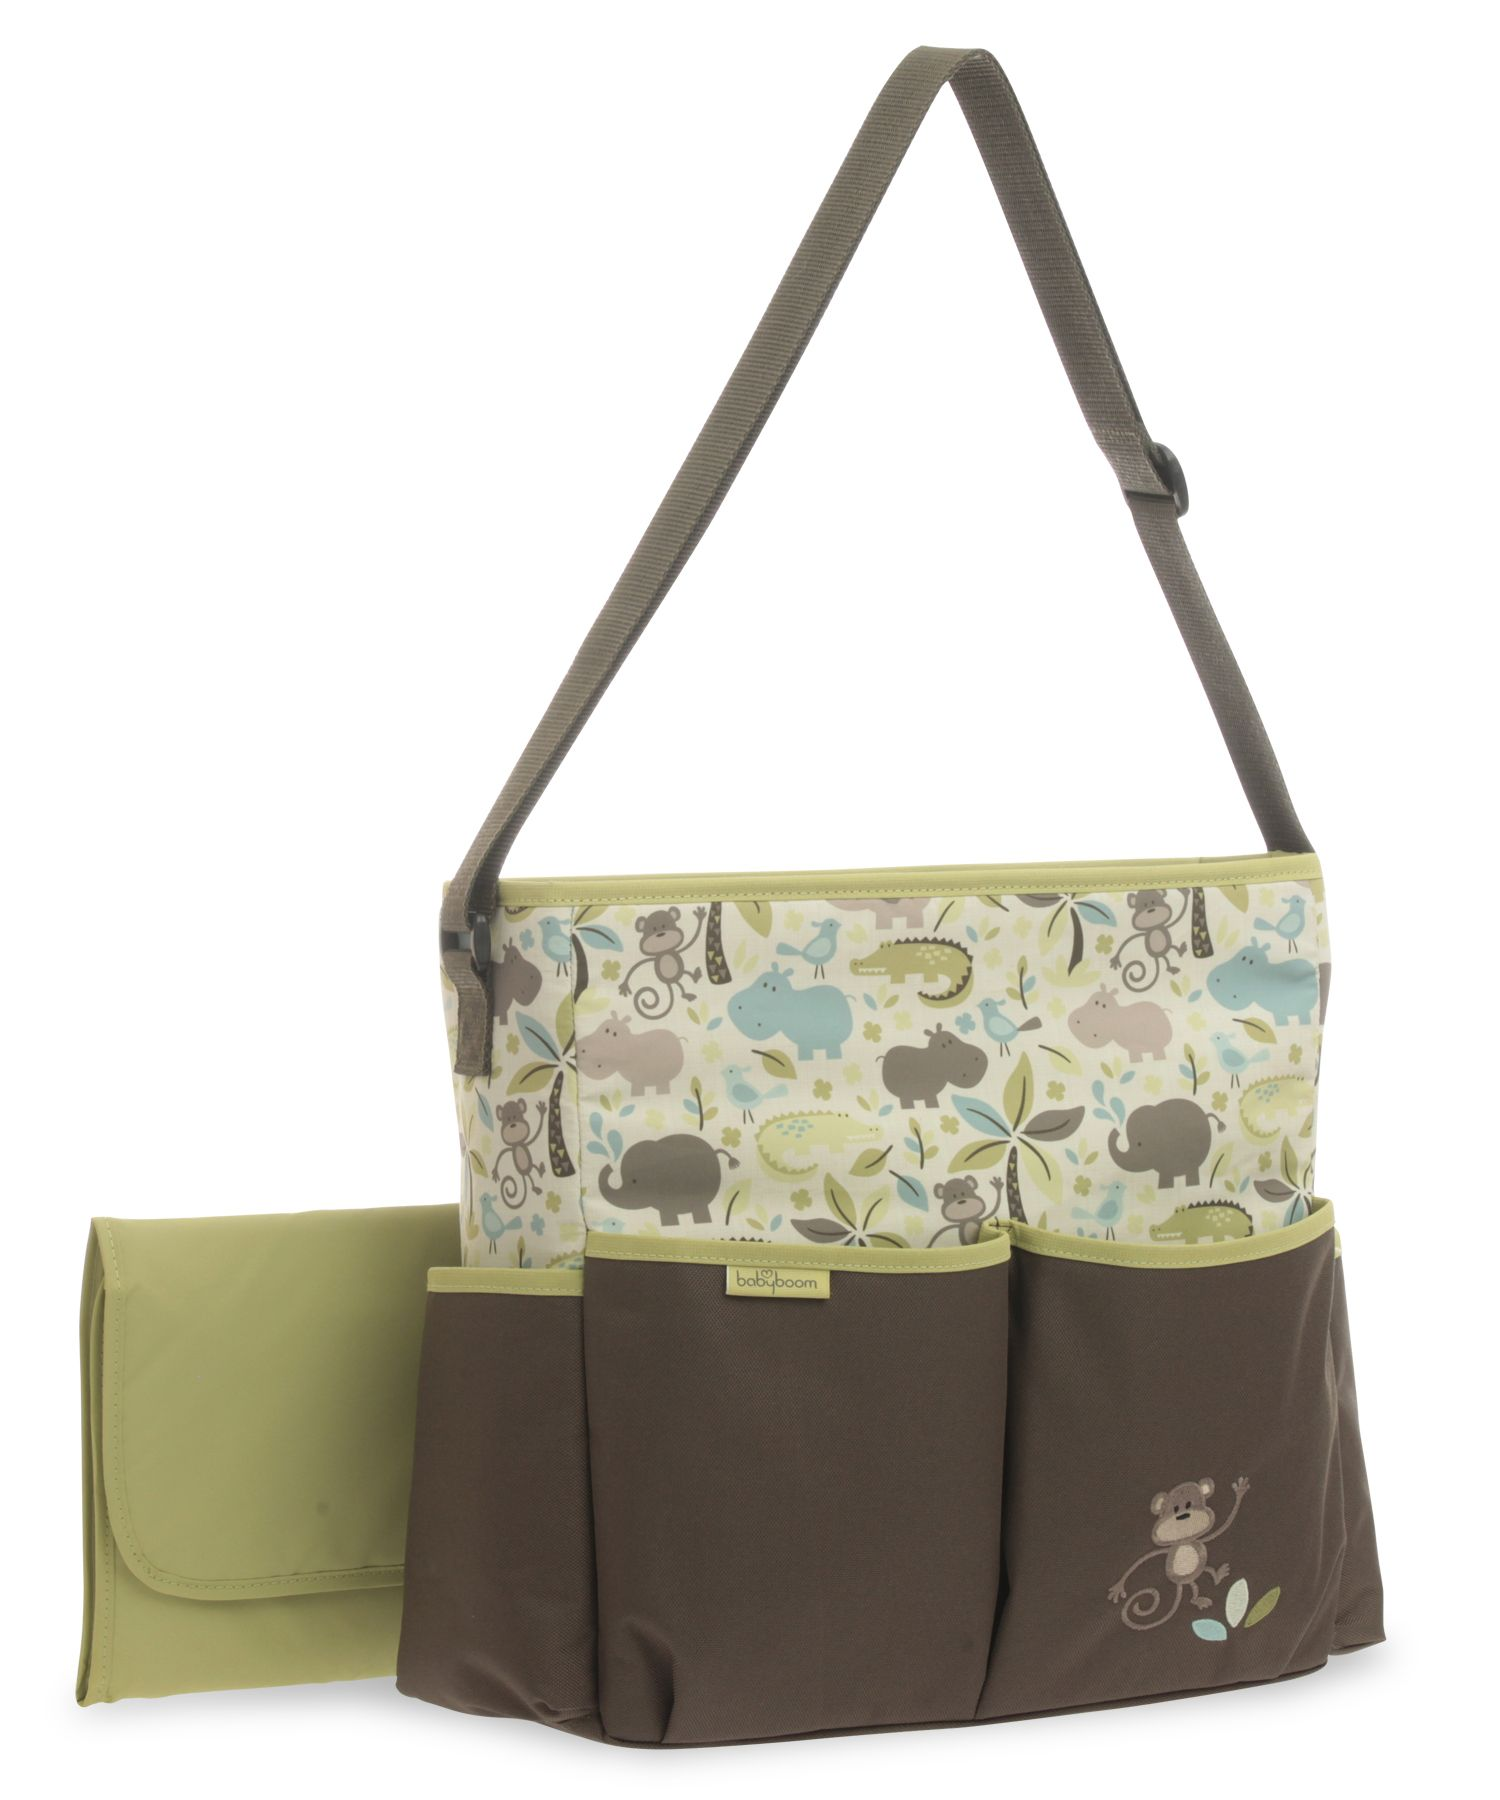 Super Safari Diaper Bag